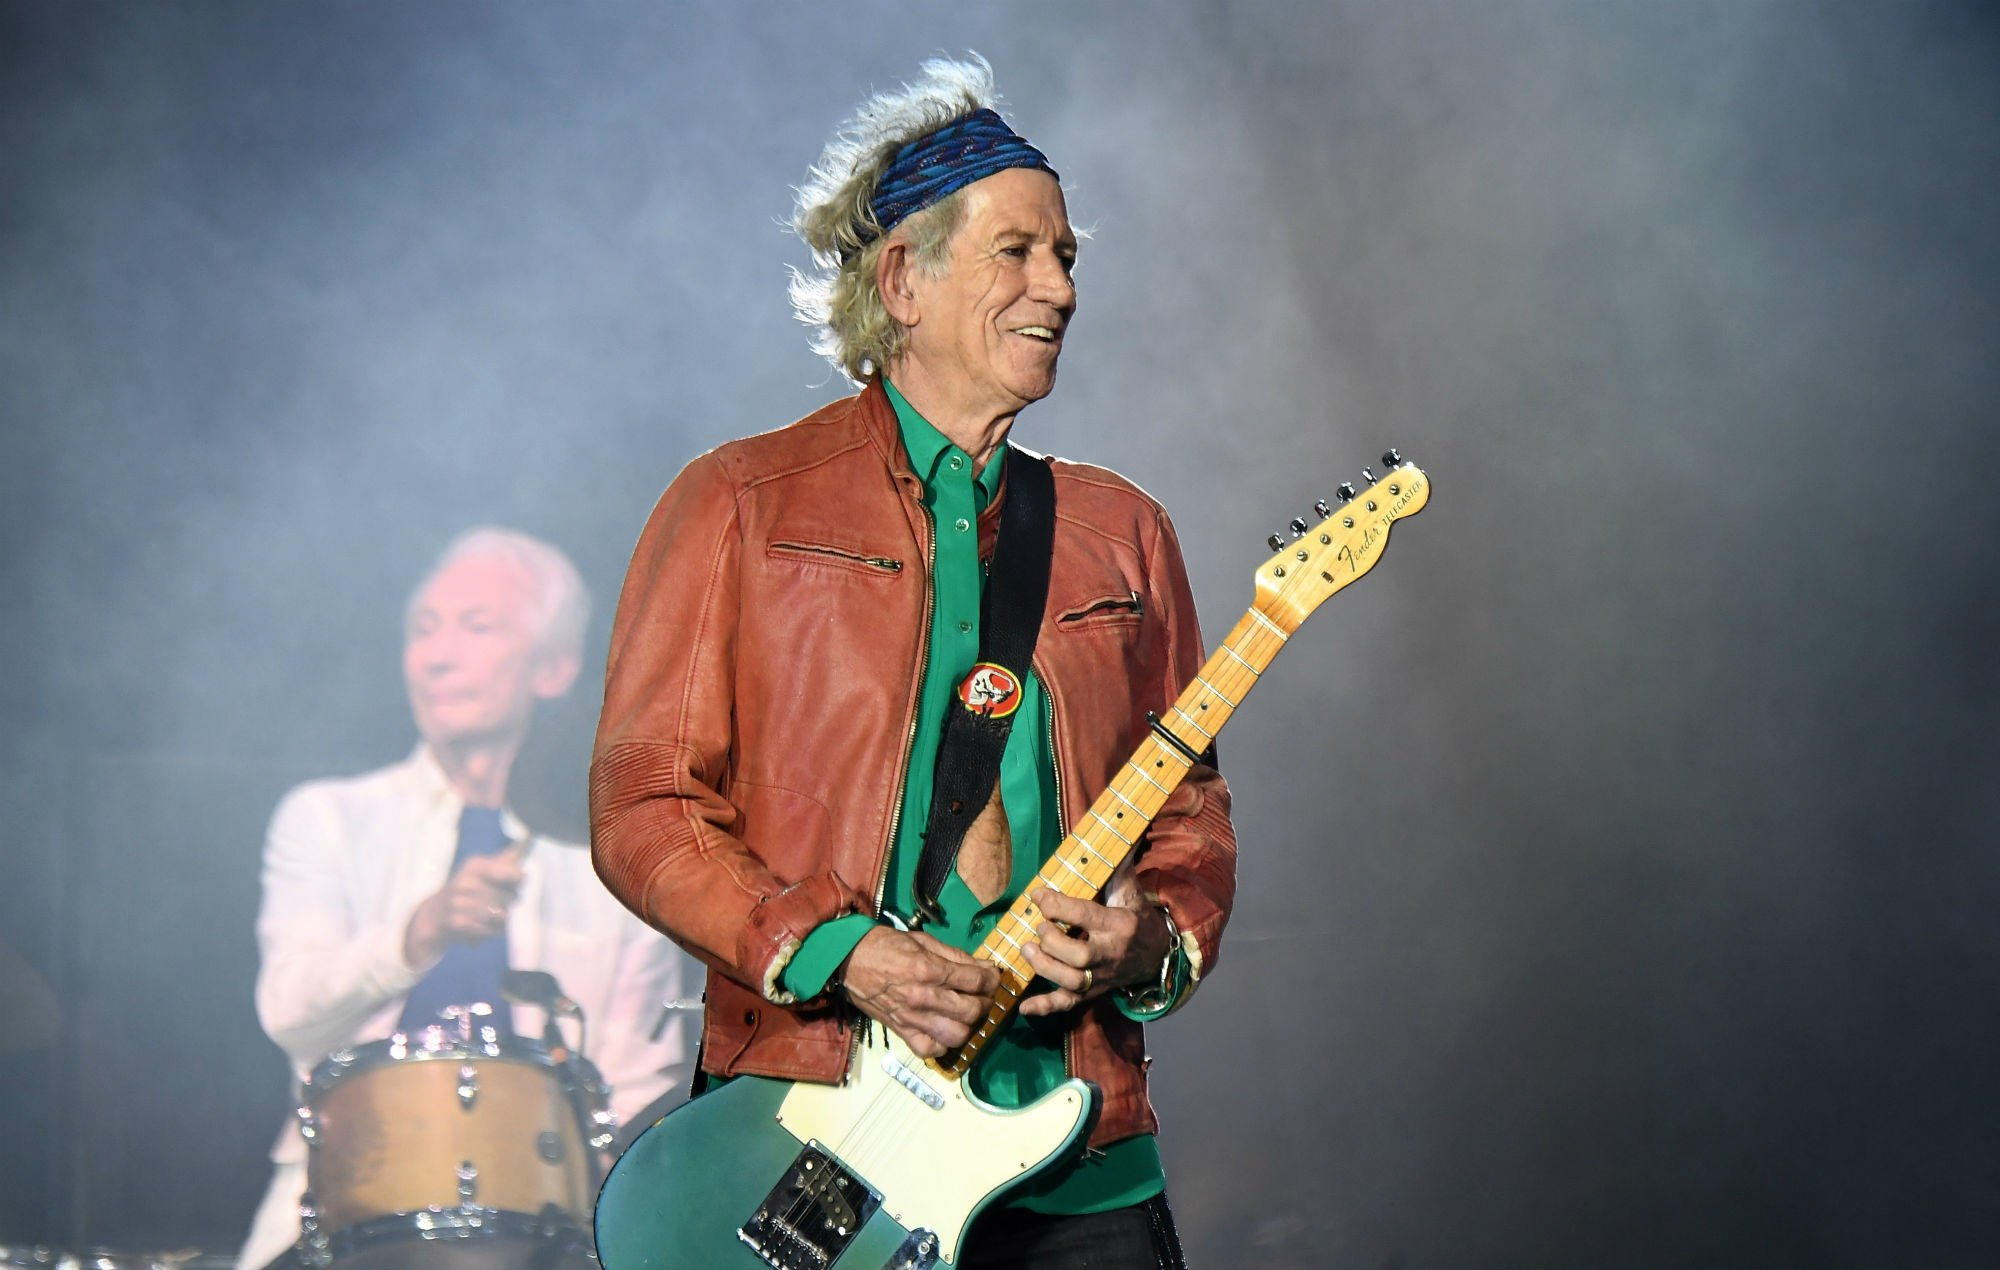 """Keith Richards has given up drinking: """"It was time to quit"""" https://t.co/XpsJY5Ogxp https://t.co/KETne8mUy5"""